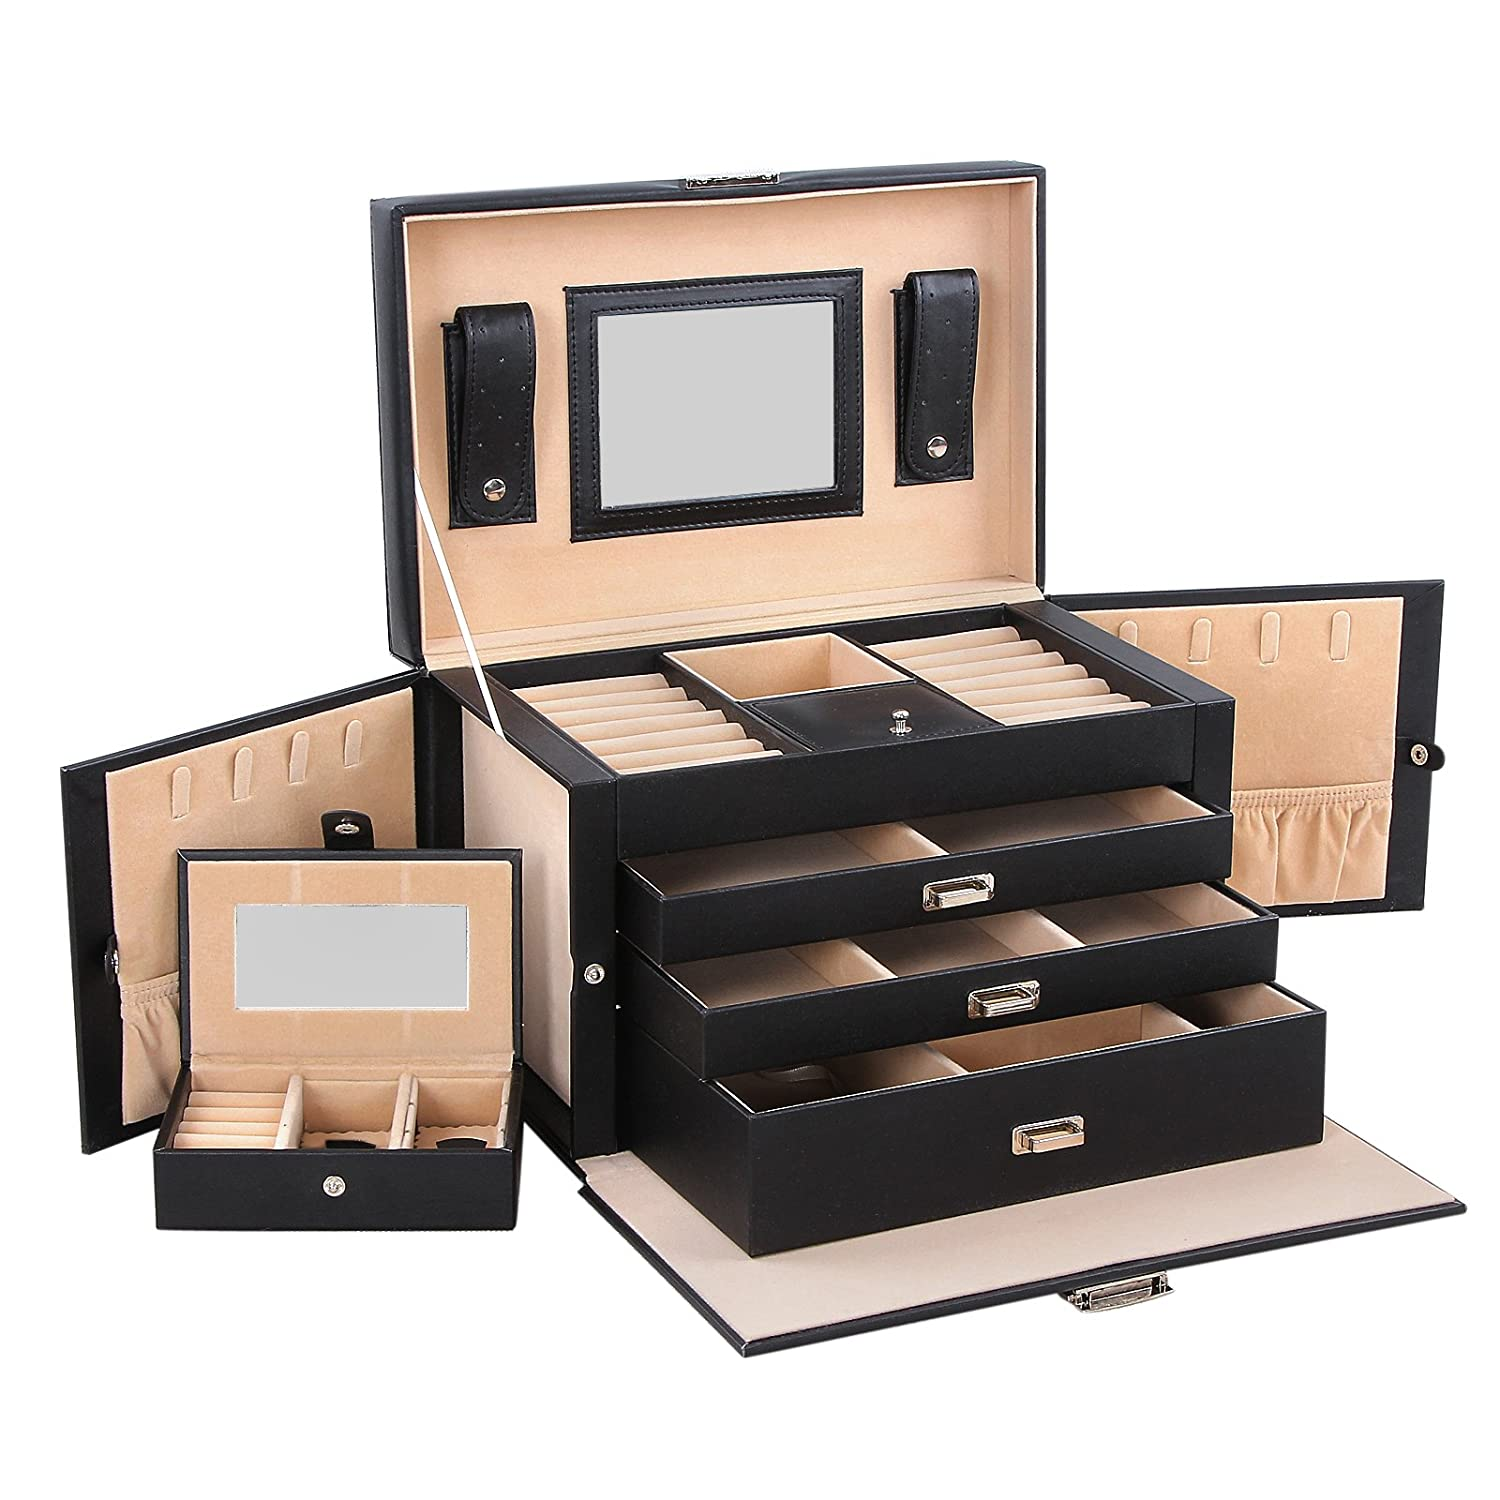 Songmics Black Leather Jewelry Box Lockable Jewelry Case with Mirror and Storage Drawers black jewelry watch box 10 grids slots watches display organizer storage case with lock